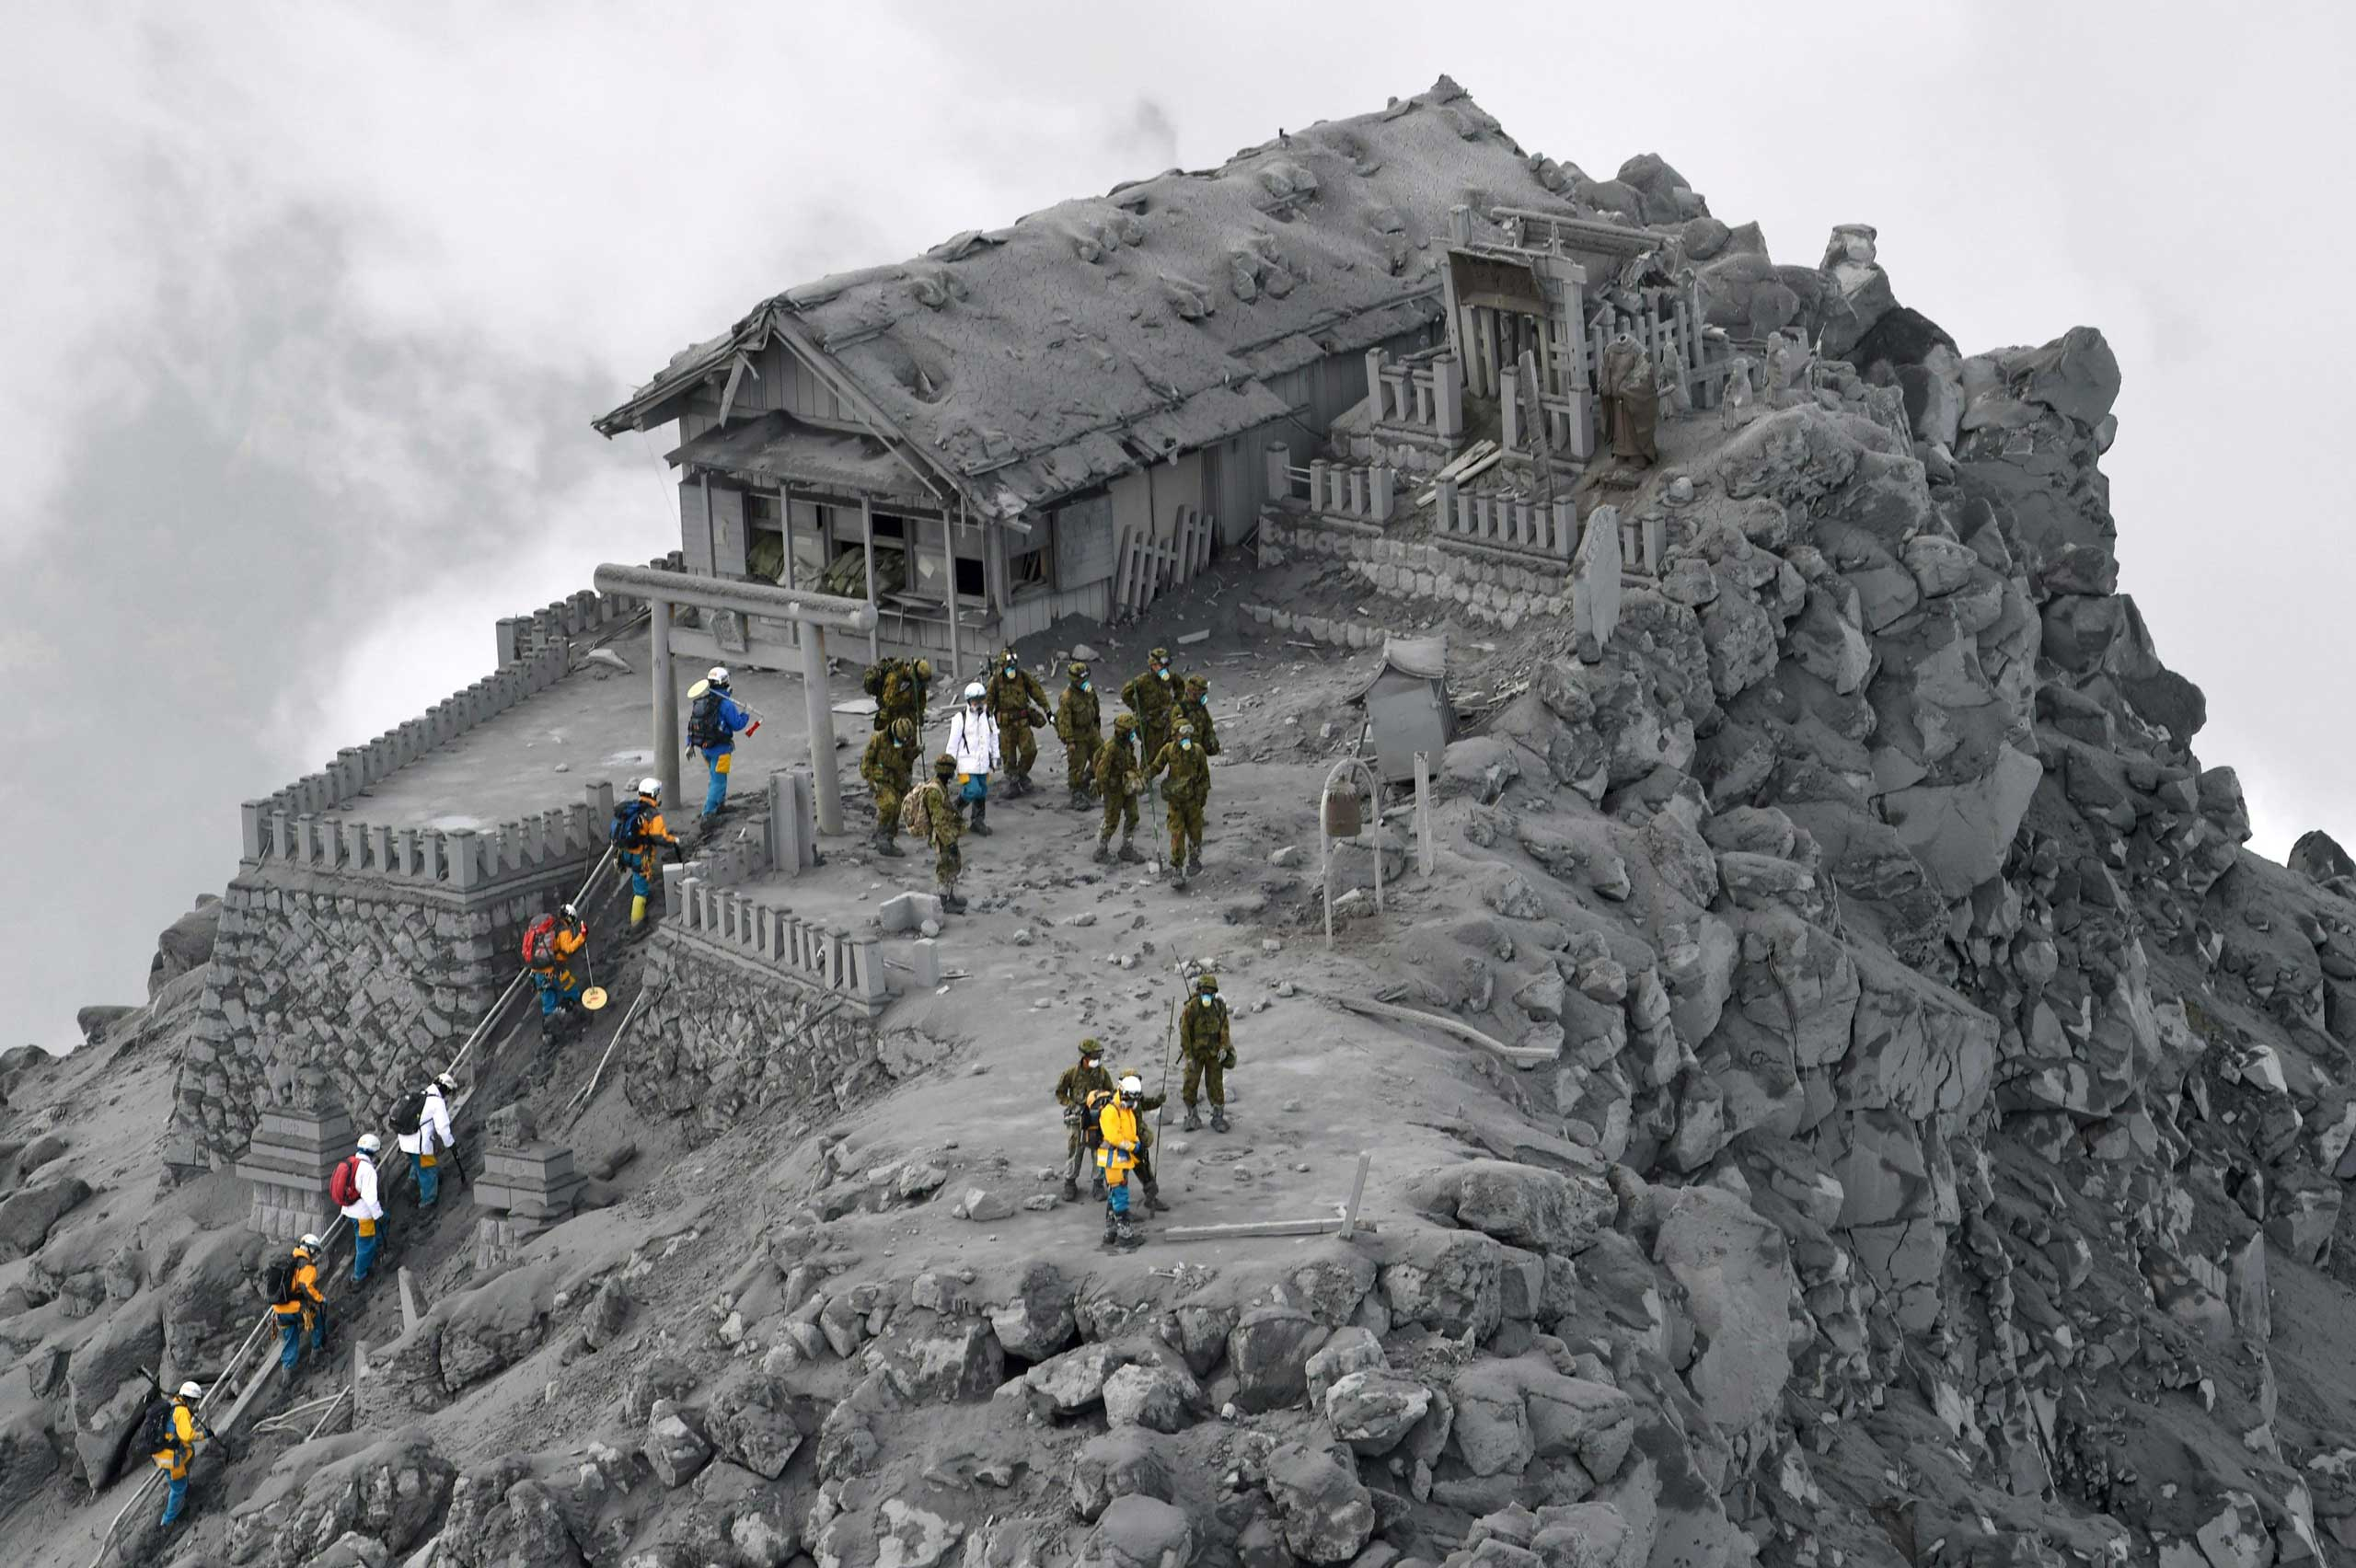 <b>Japan Volcano</b> Japan Ground Self-Defense Force personnel and other rescuers arrive to conduct search operations at the ash-covered Ontake Shrine near the summit of Mount Ontake in central Japan on Oct. 4, 2014.